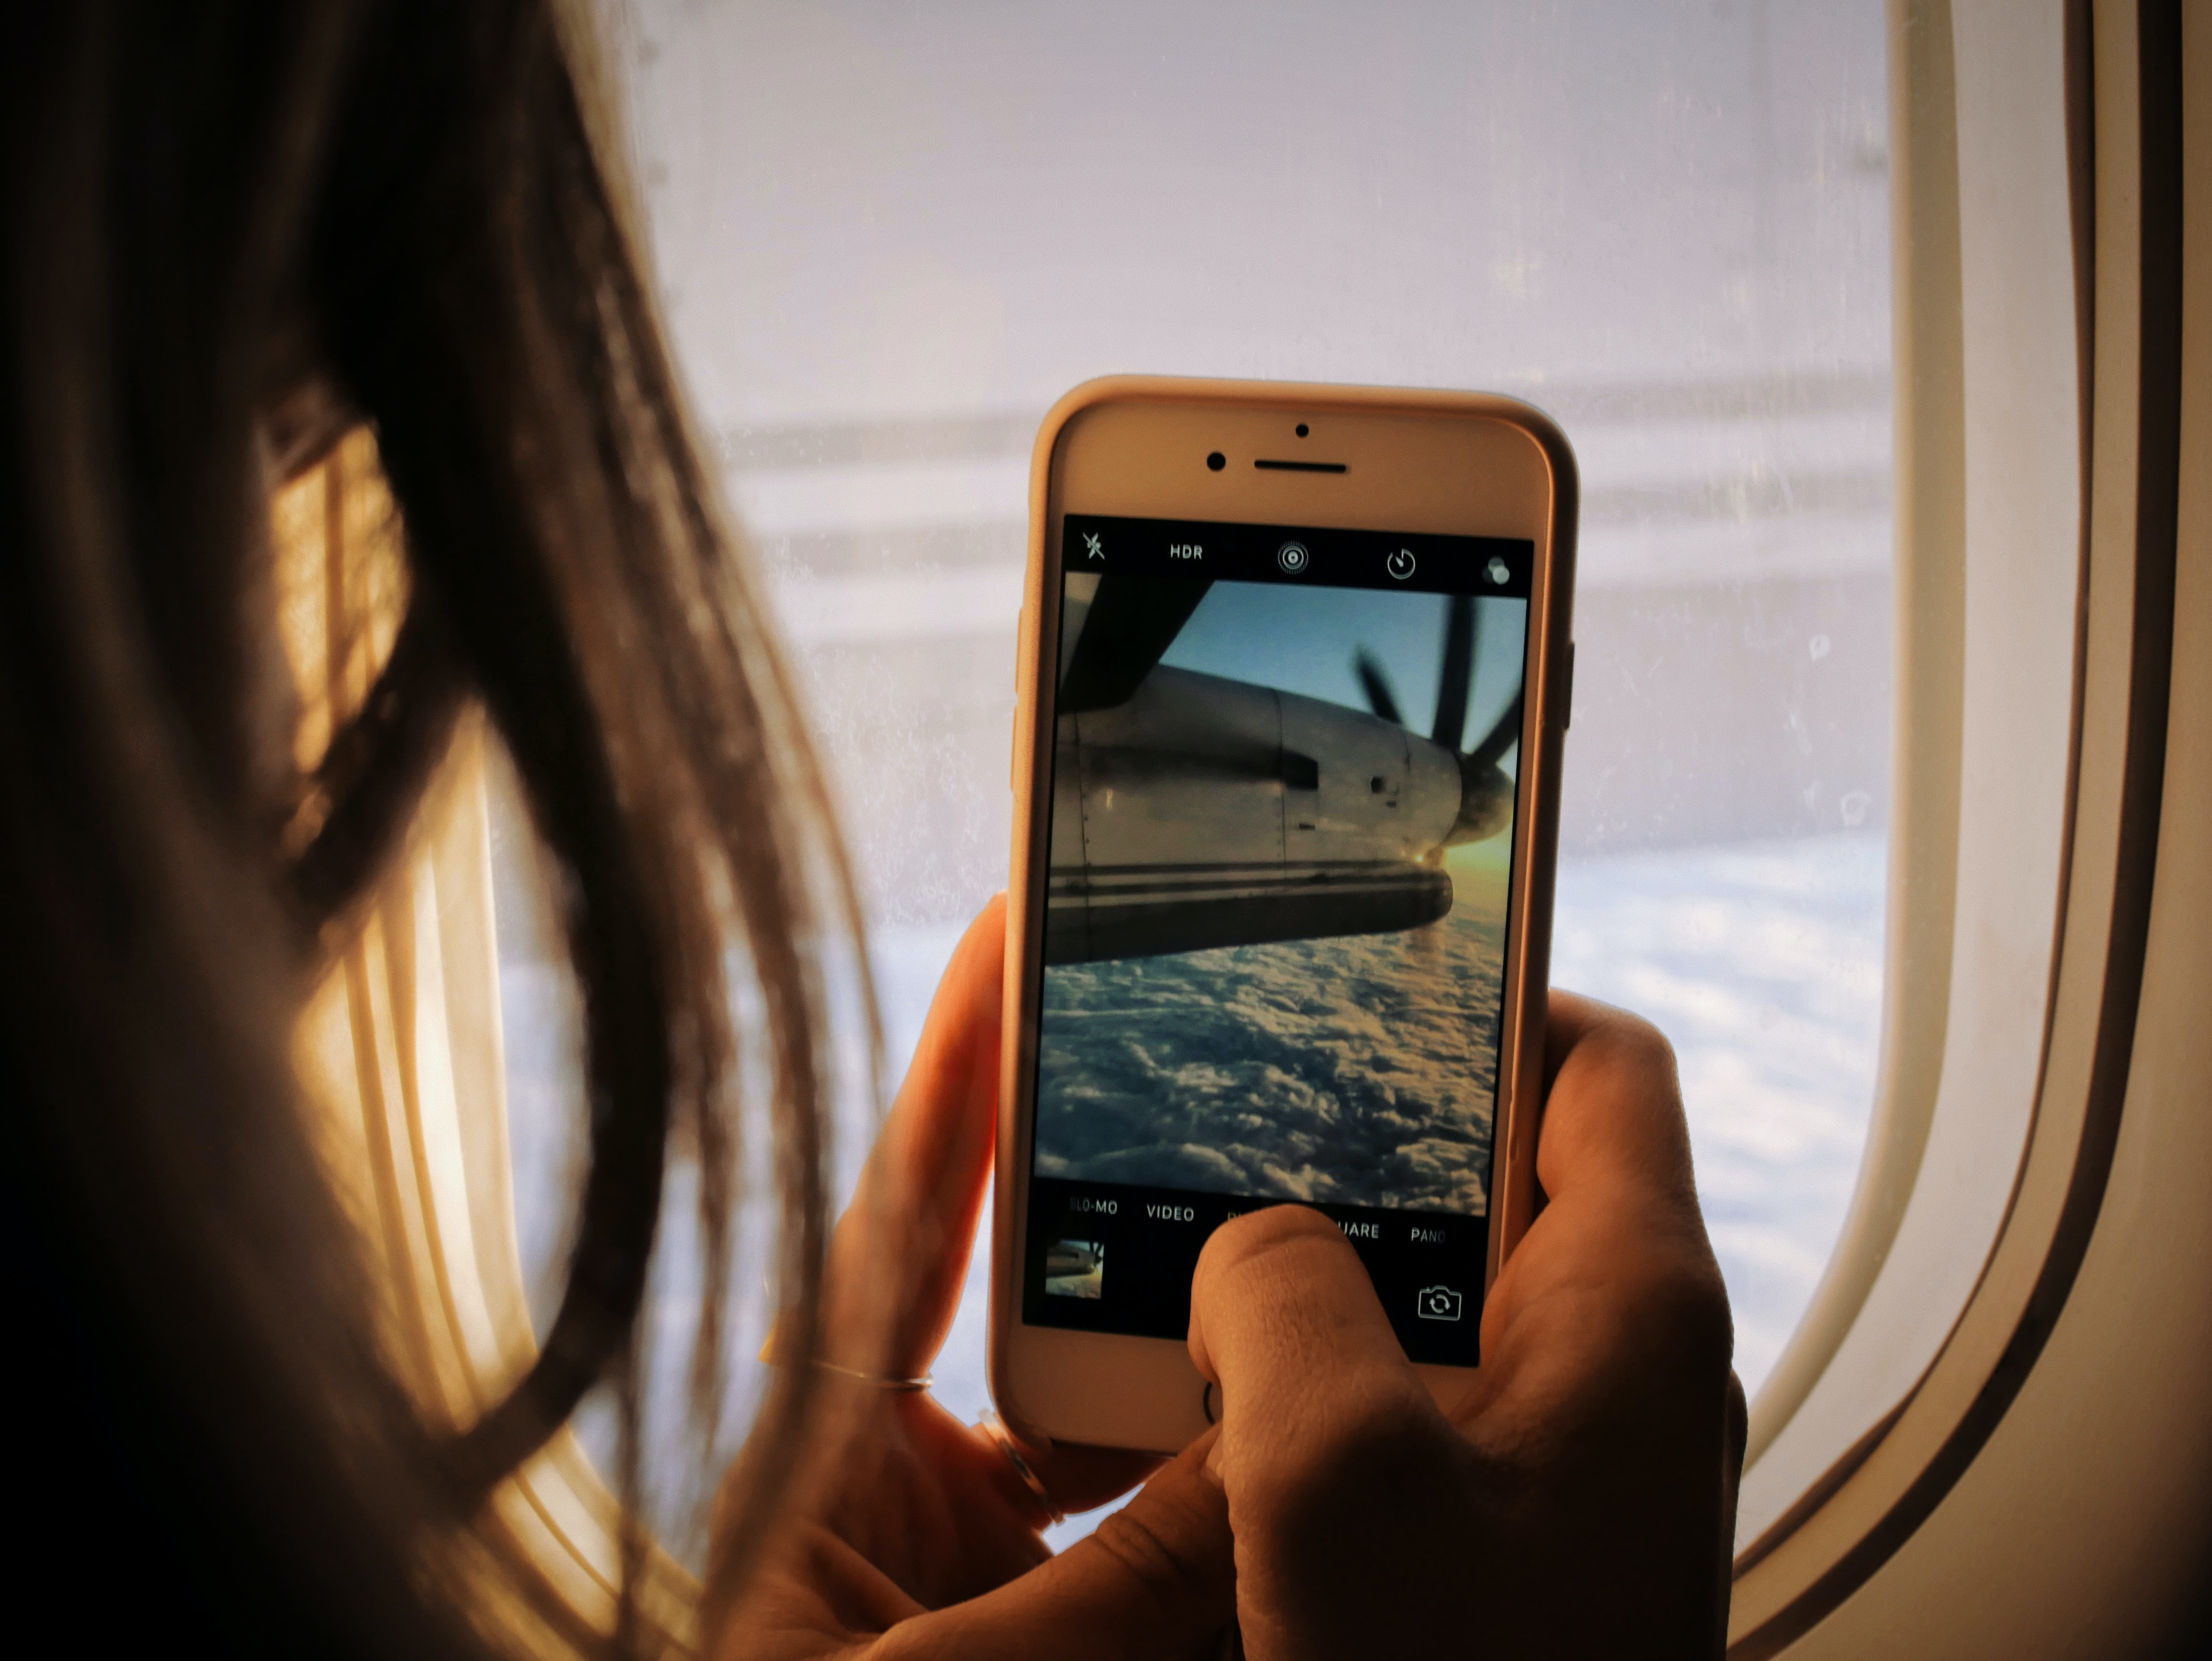 A person taking a picture of a plane wing and jet.